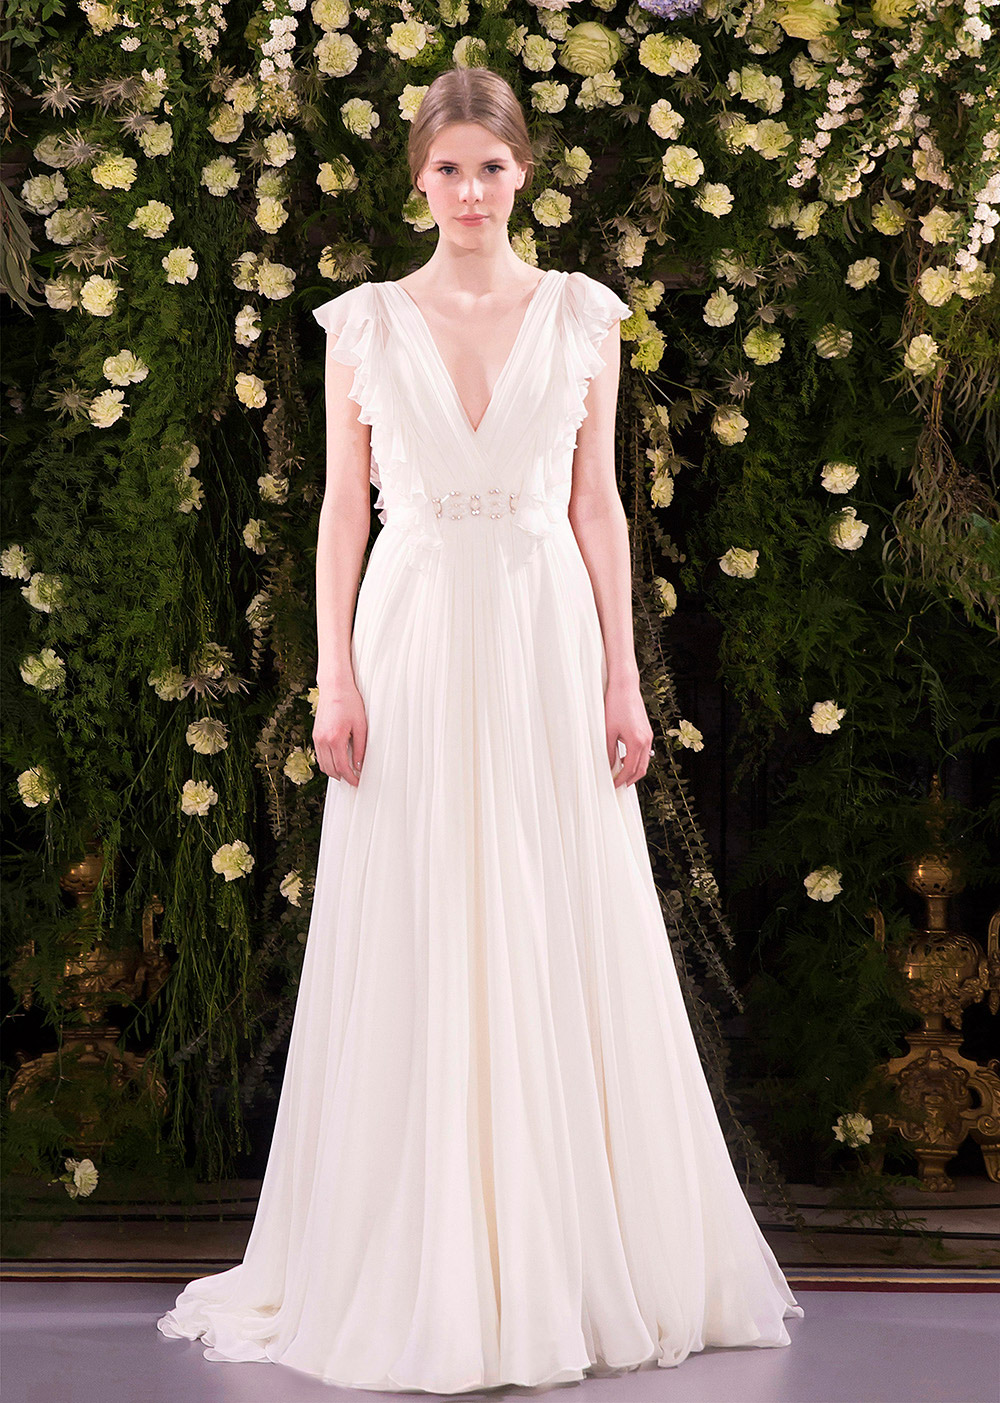 Julia – Jenny Packham 2019 Bridal Collection. www.theweddingnotebook.com